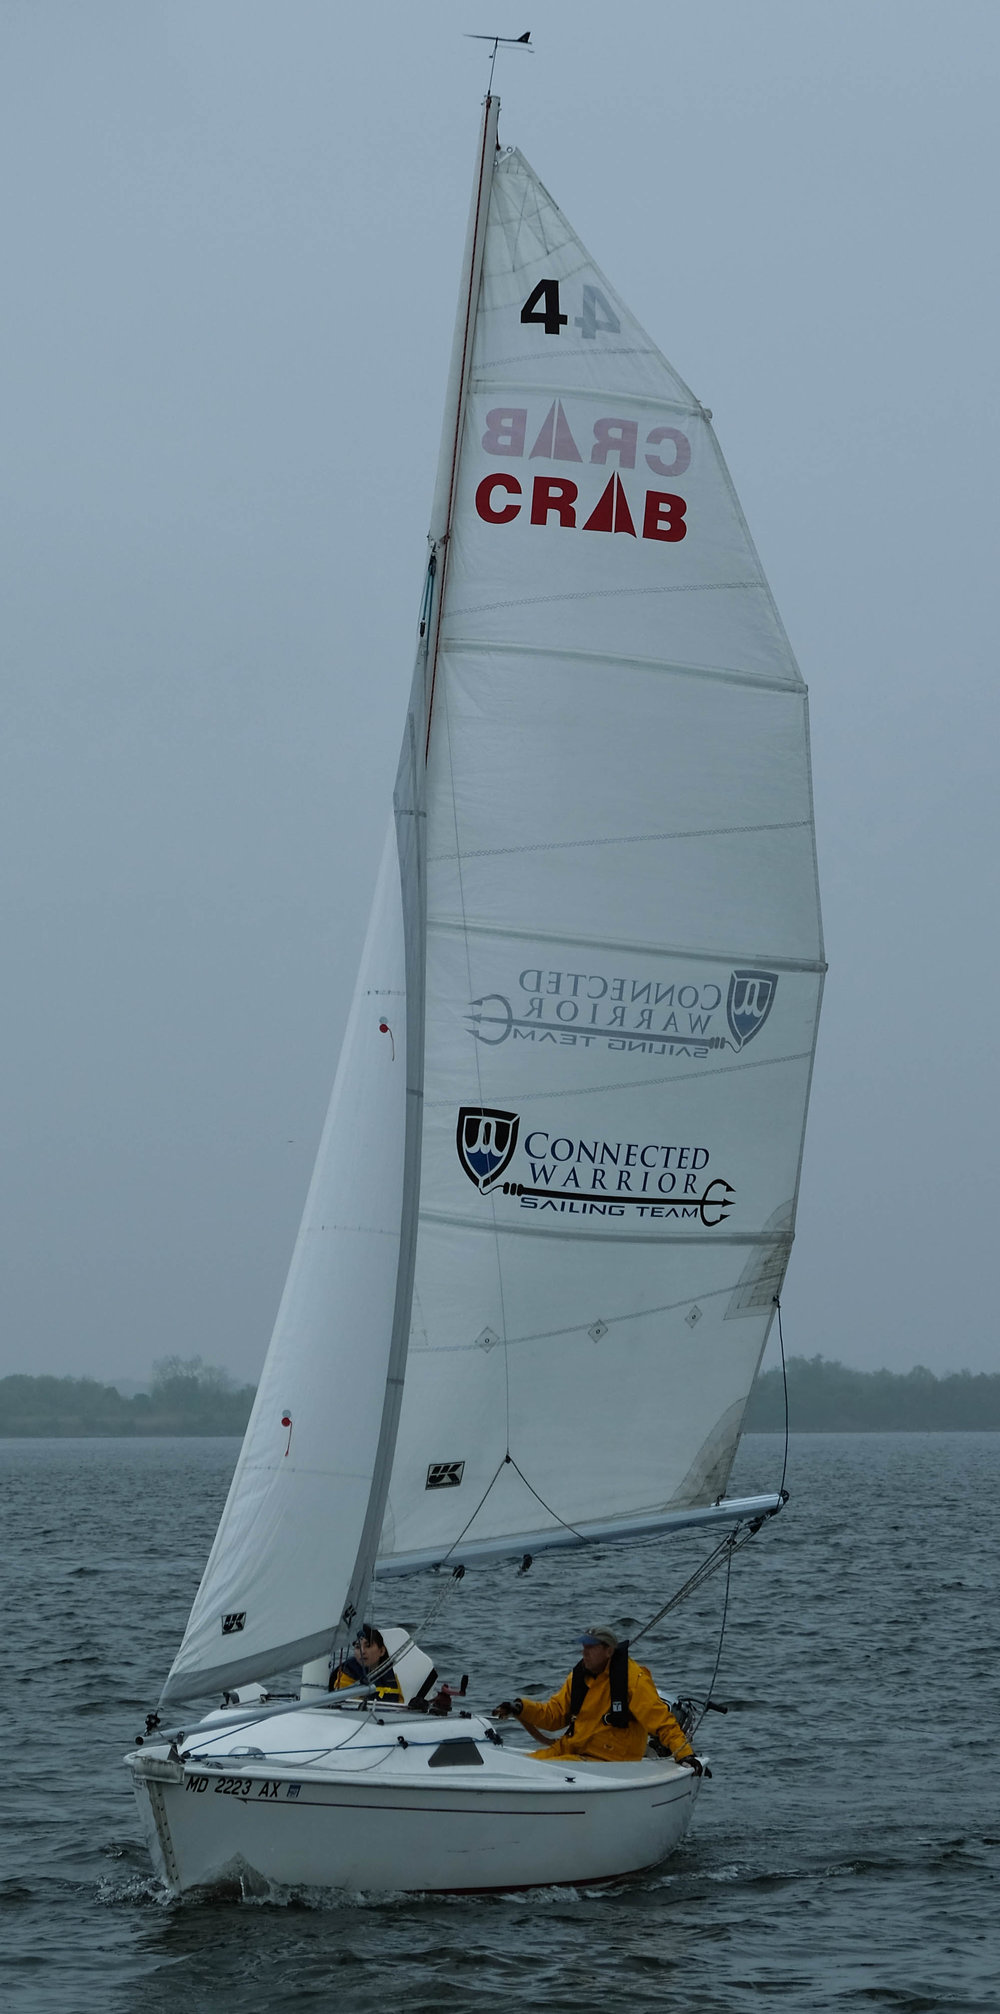 One of the specially modified CRAB sailboats allows disabled sailors to operate a boat and experience the sense of freedom inherent to the sport.